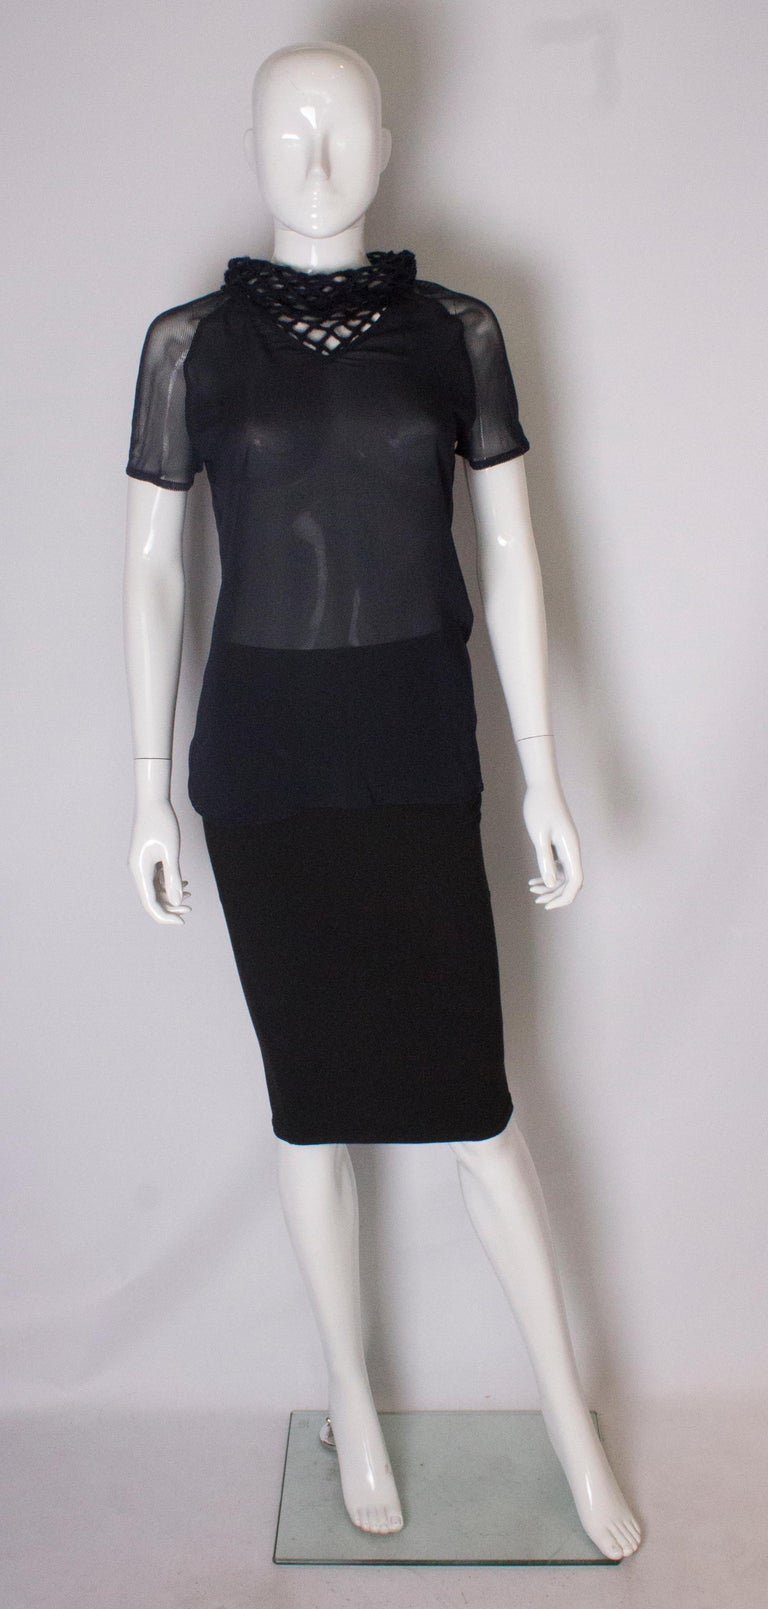 A great top bu Obzek. This easy to wear and elegant top has a crochet collar, and short net sleaves, with a matt body. It is model number AO711.